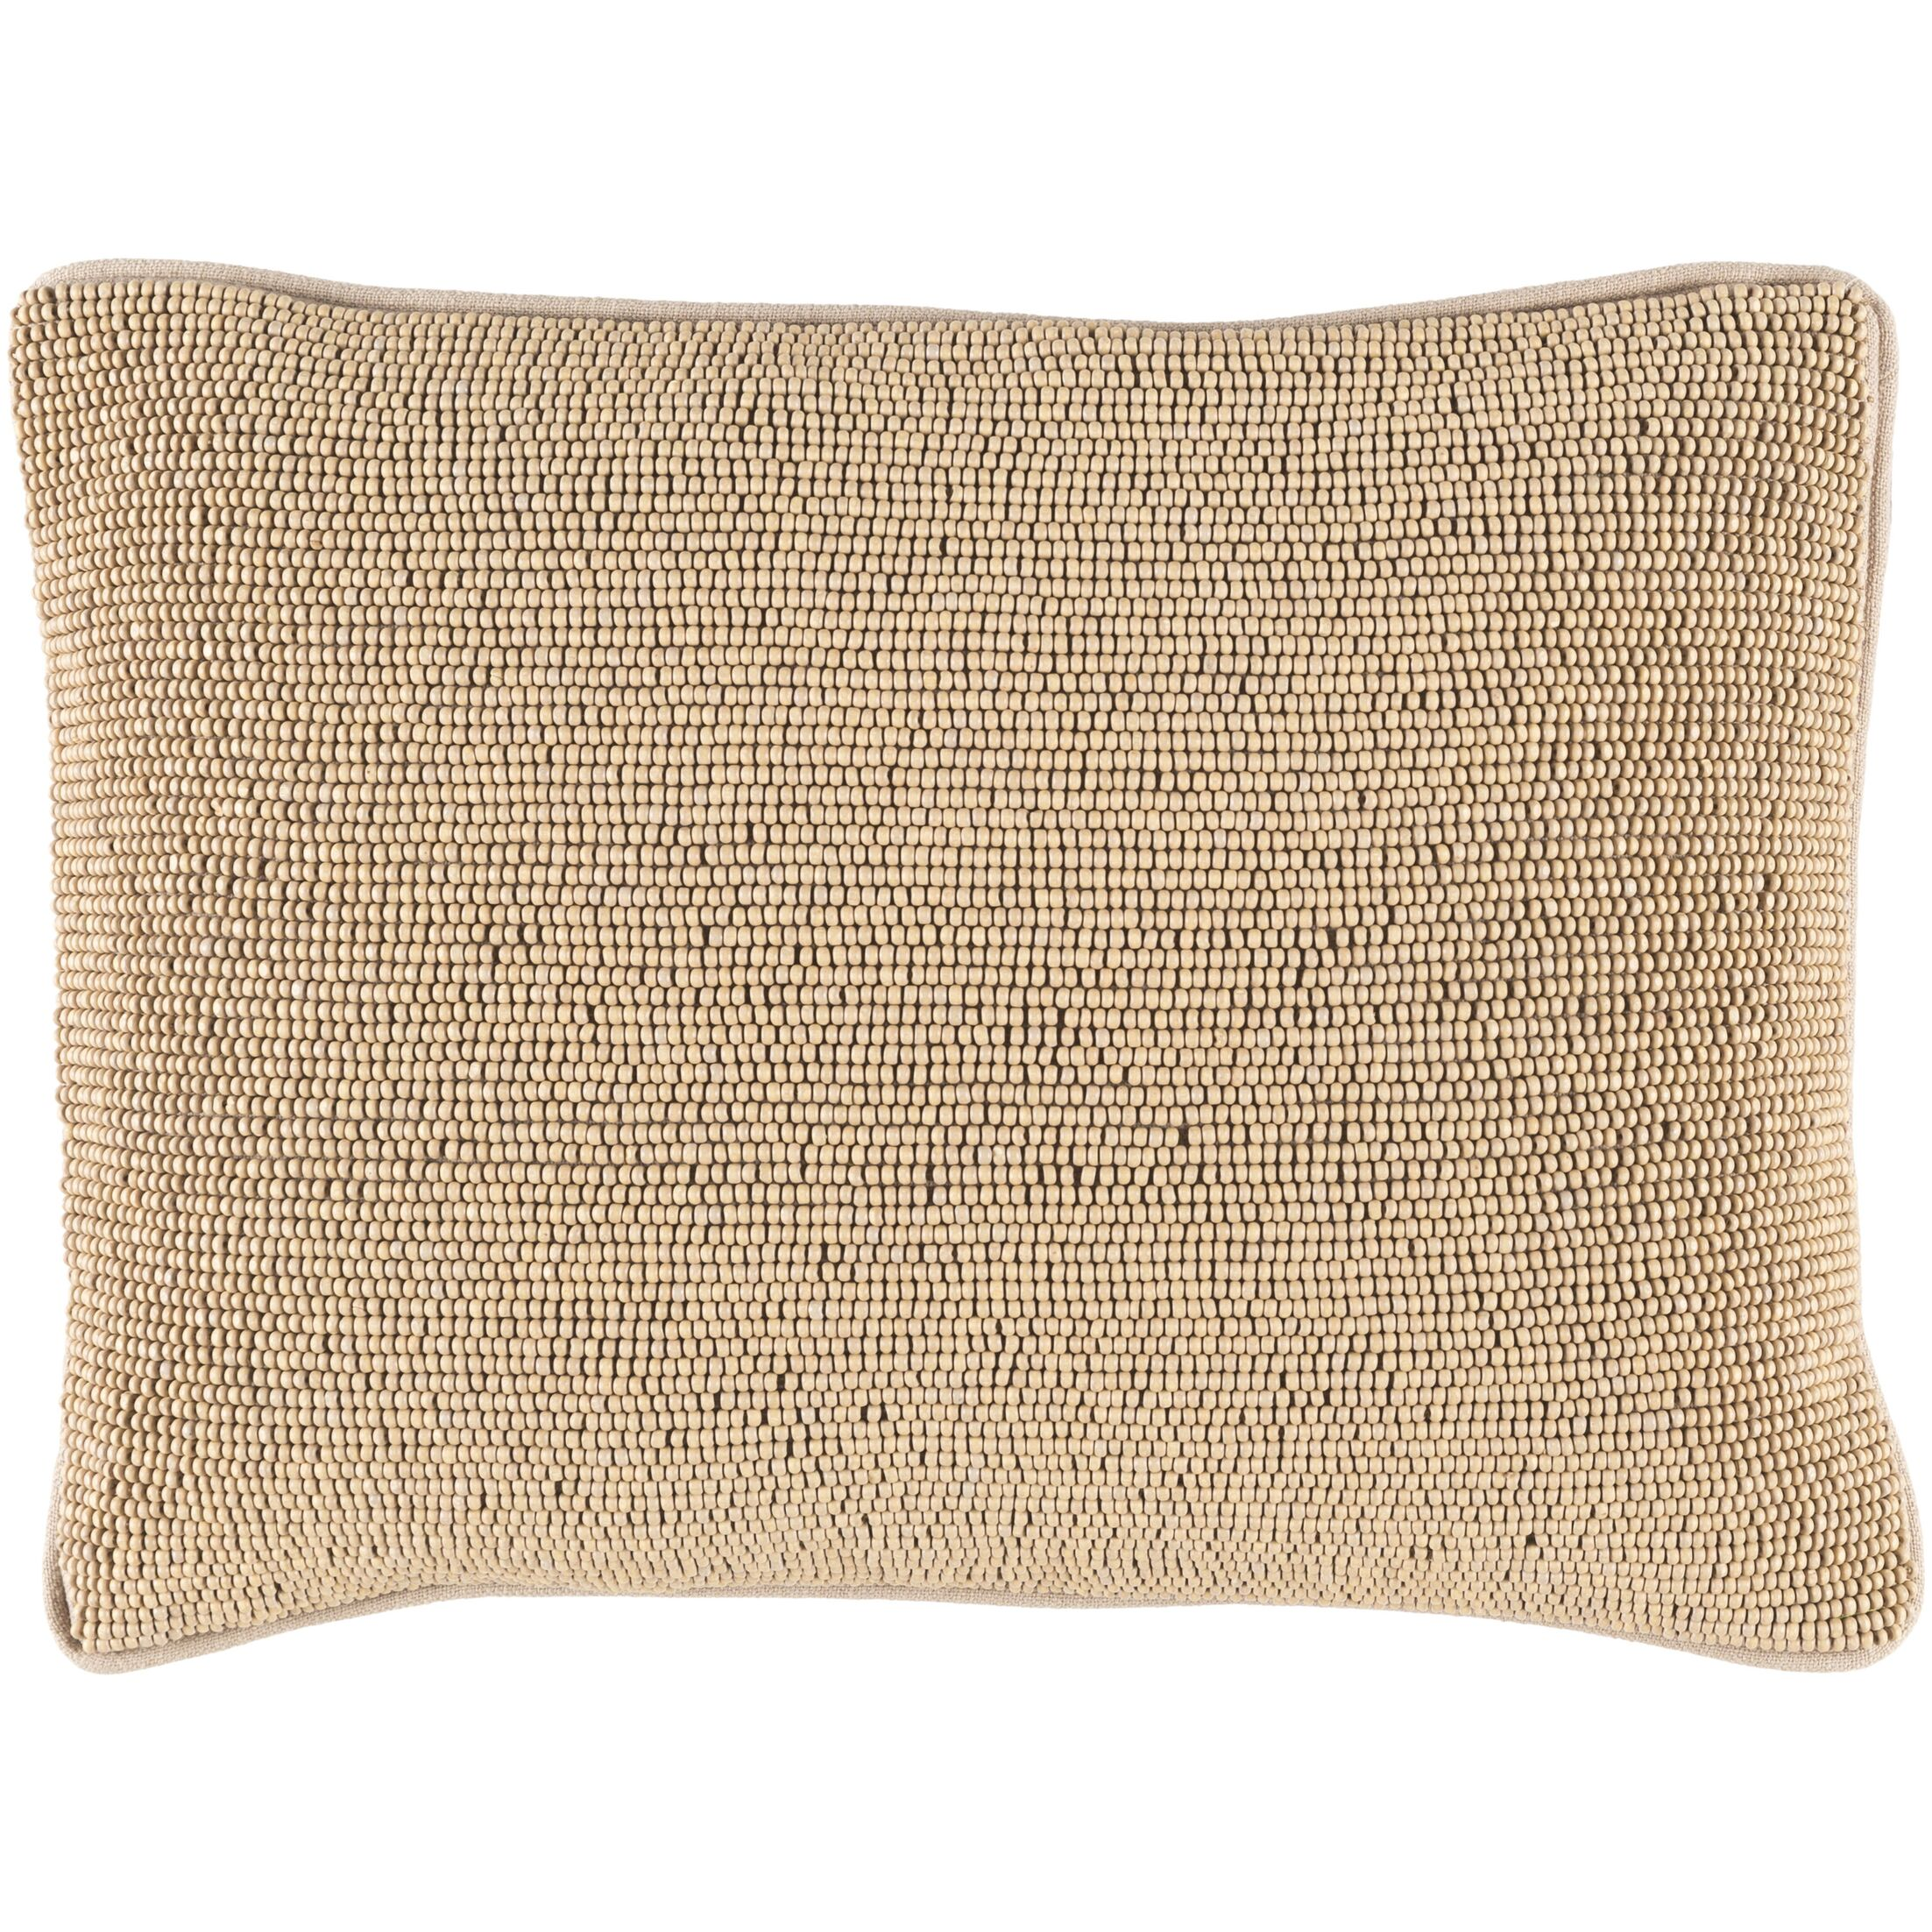 Grosvenor Down Lumbar Pillow Color: Beige/Taupe